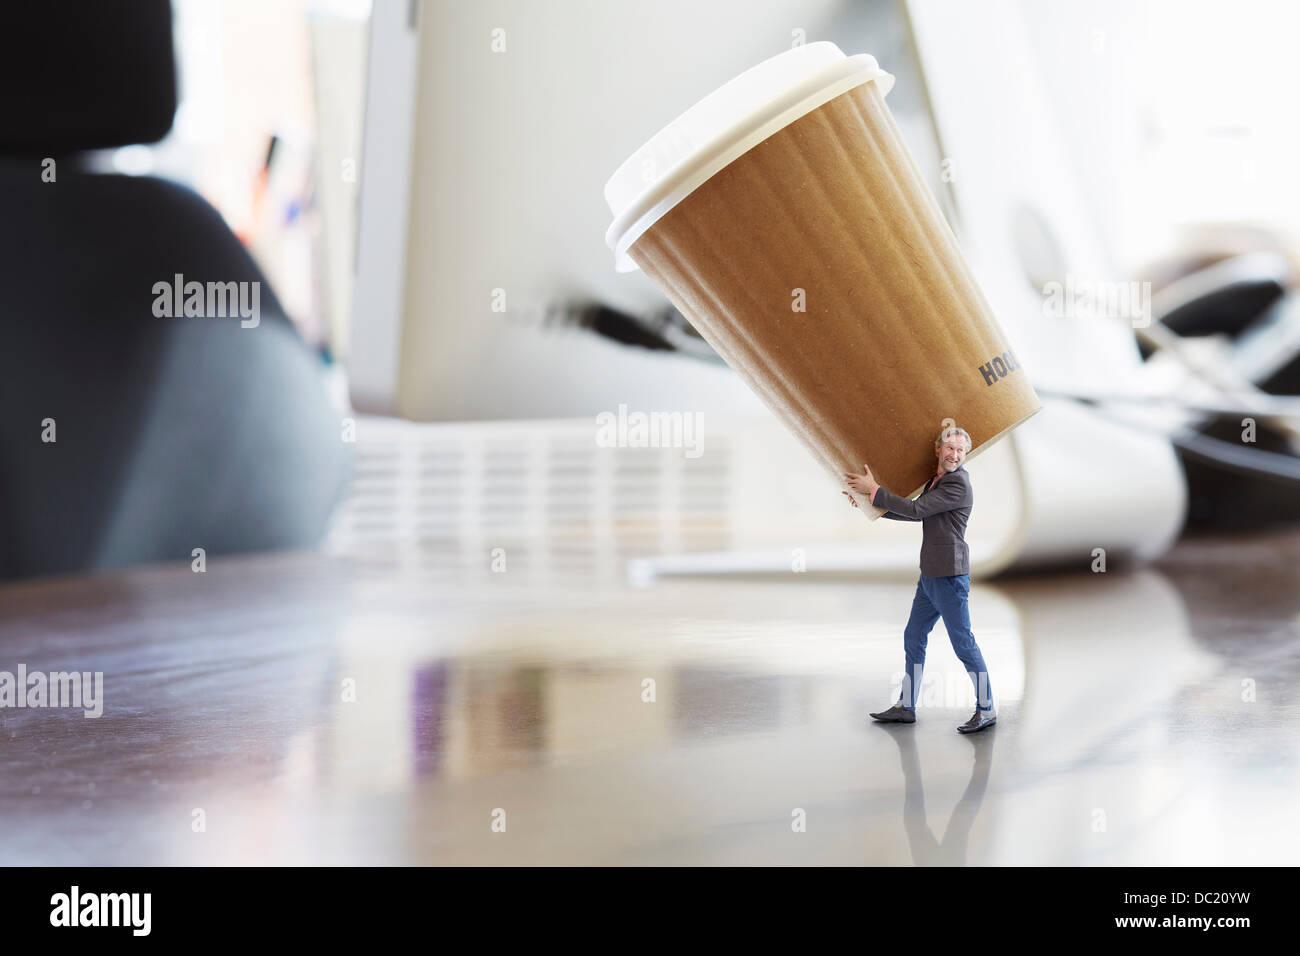 Mature businessman carrying large disposable cup on oversized desk - Stock Image